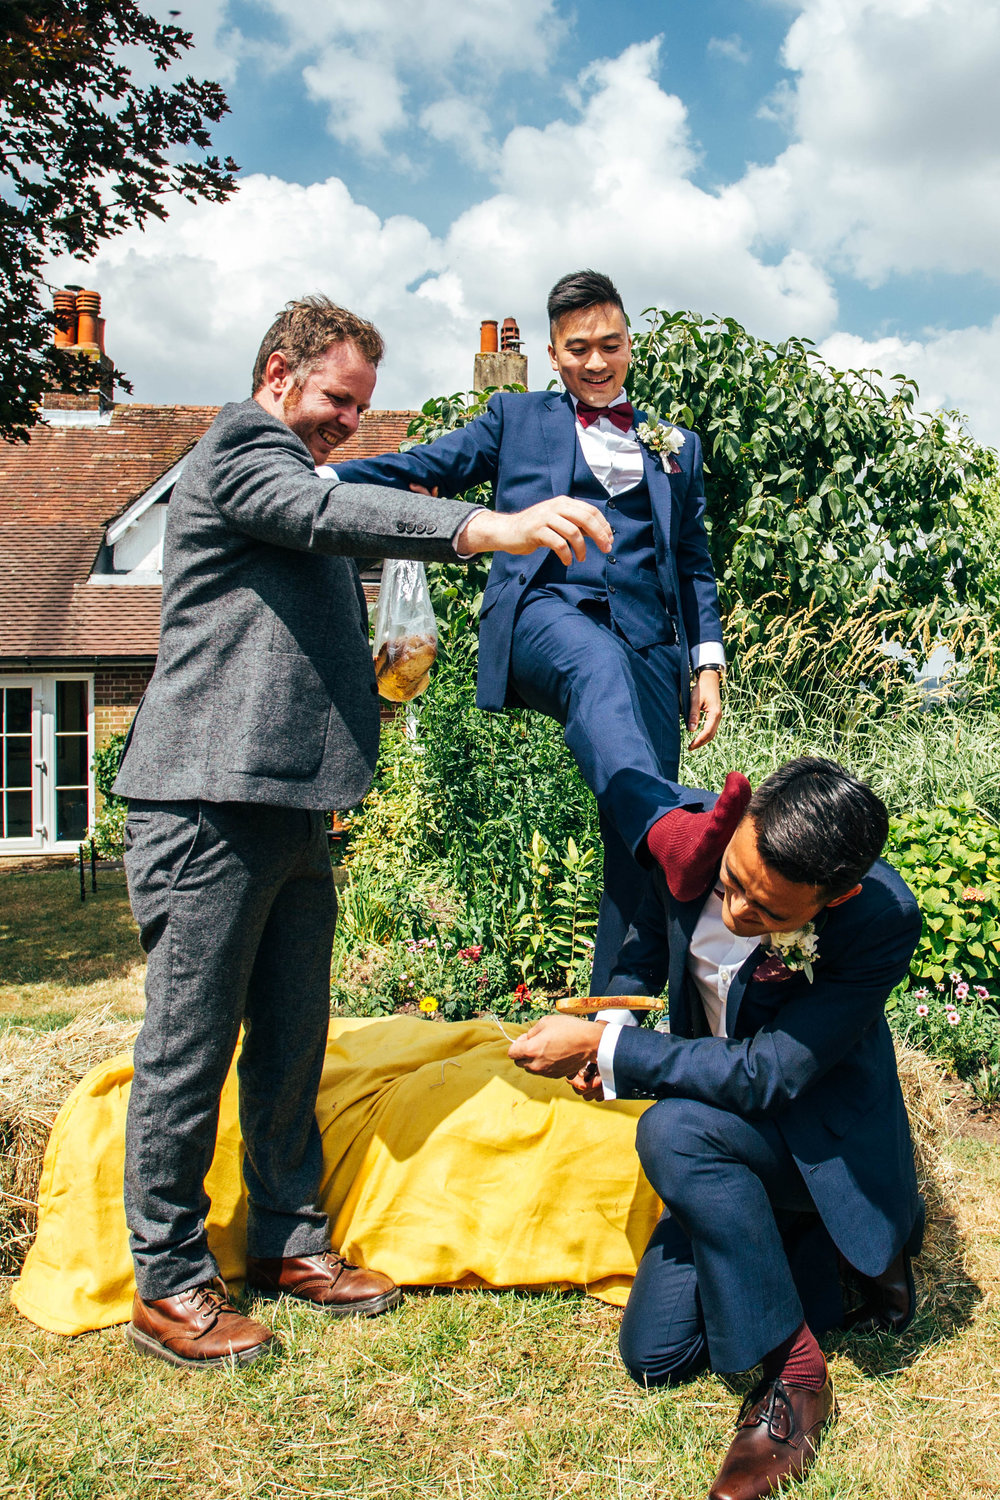 Groom rubs socked foot in Ushers face during pre-wedding game at The Long Barn, Essex Documentary Wedding Photographer